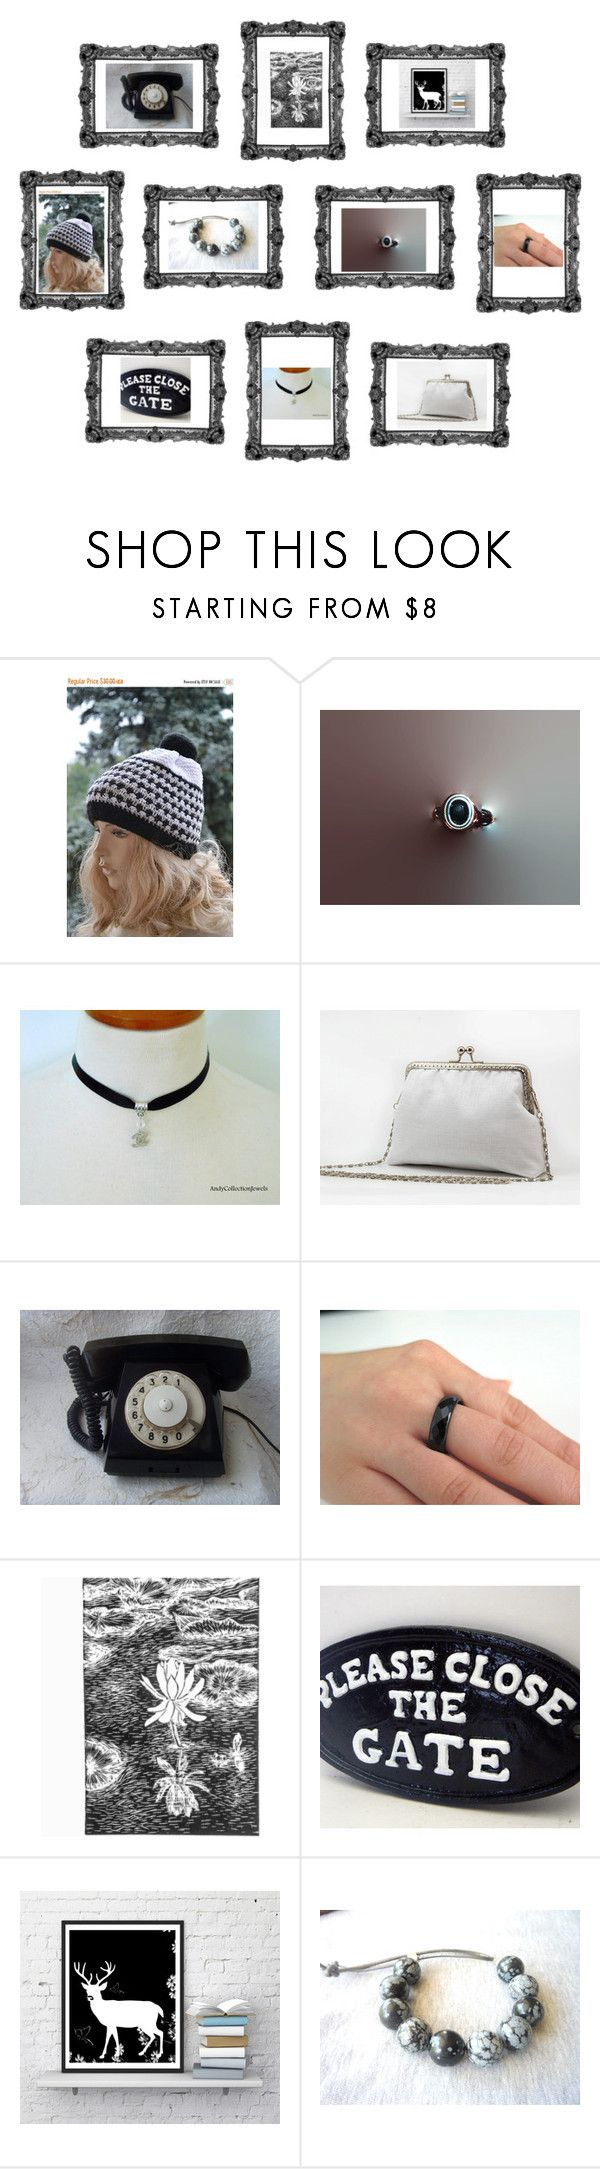 Treasury of etsy's loves by oldcastlechrista on Polyvore